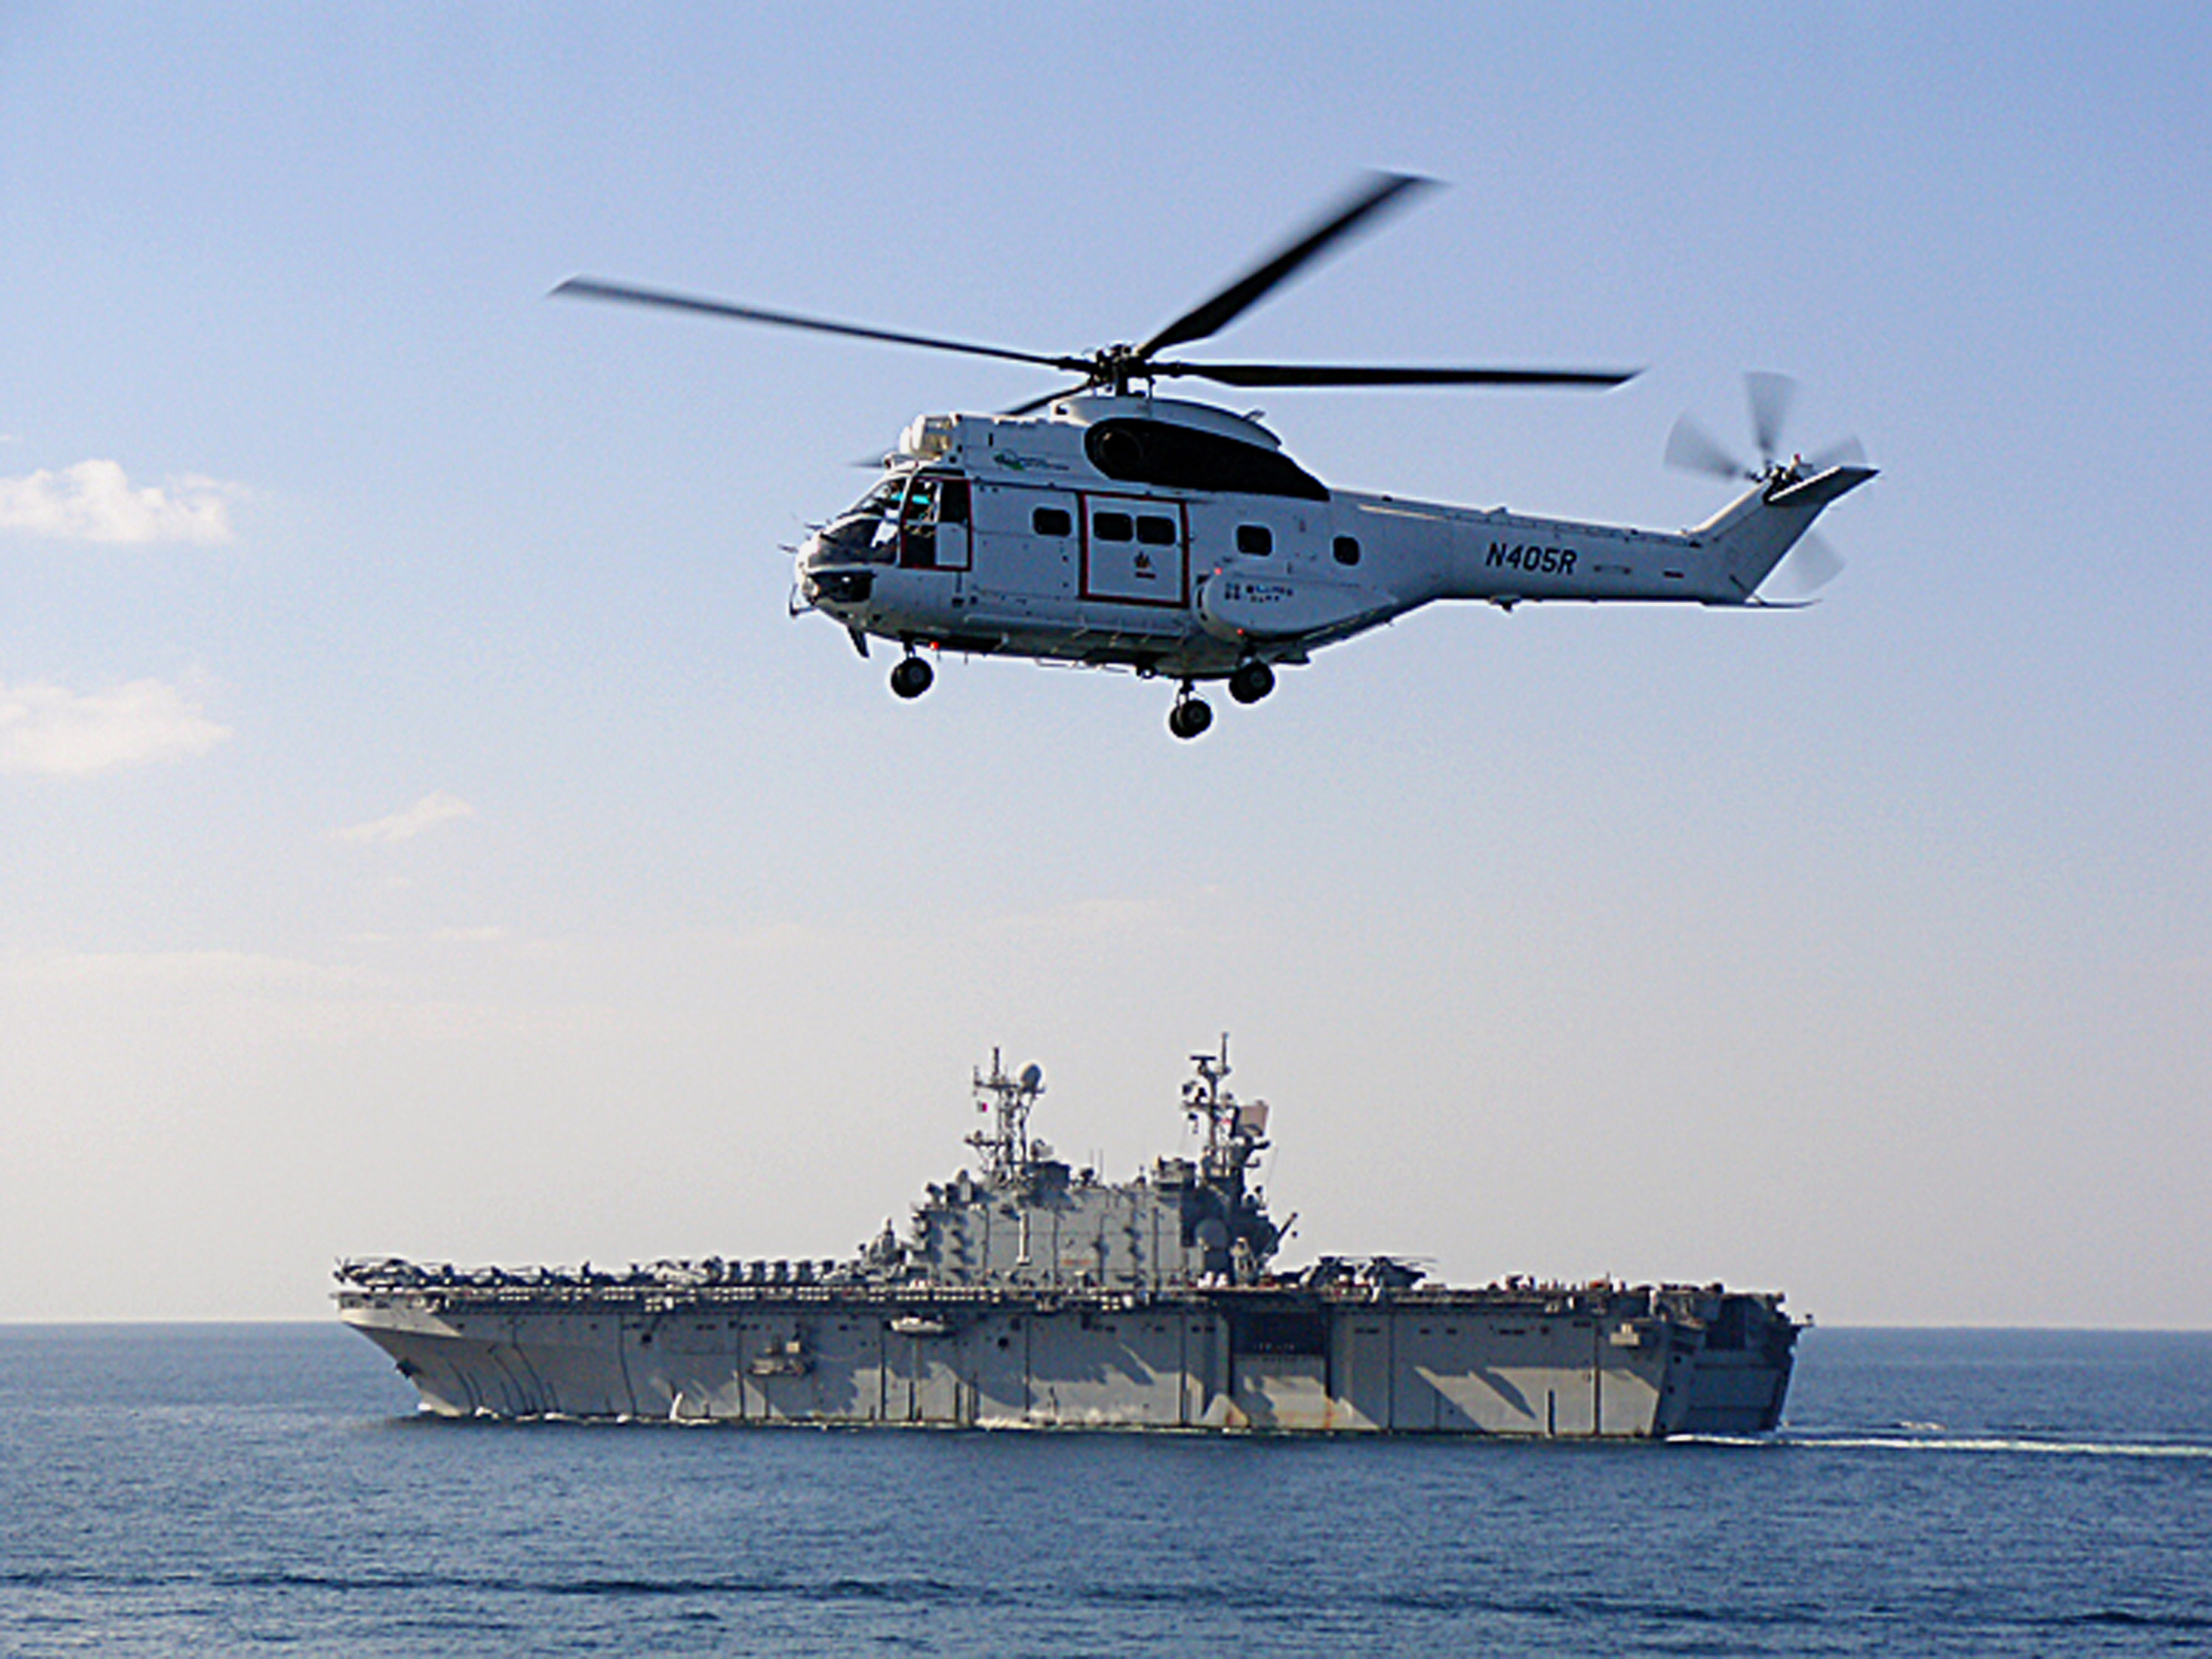 File:US Navy 080207-N-2190B-001 An EH-96 Puma helicopter ...